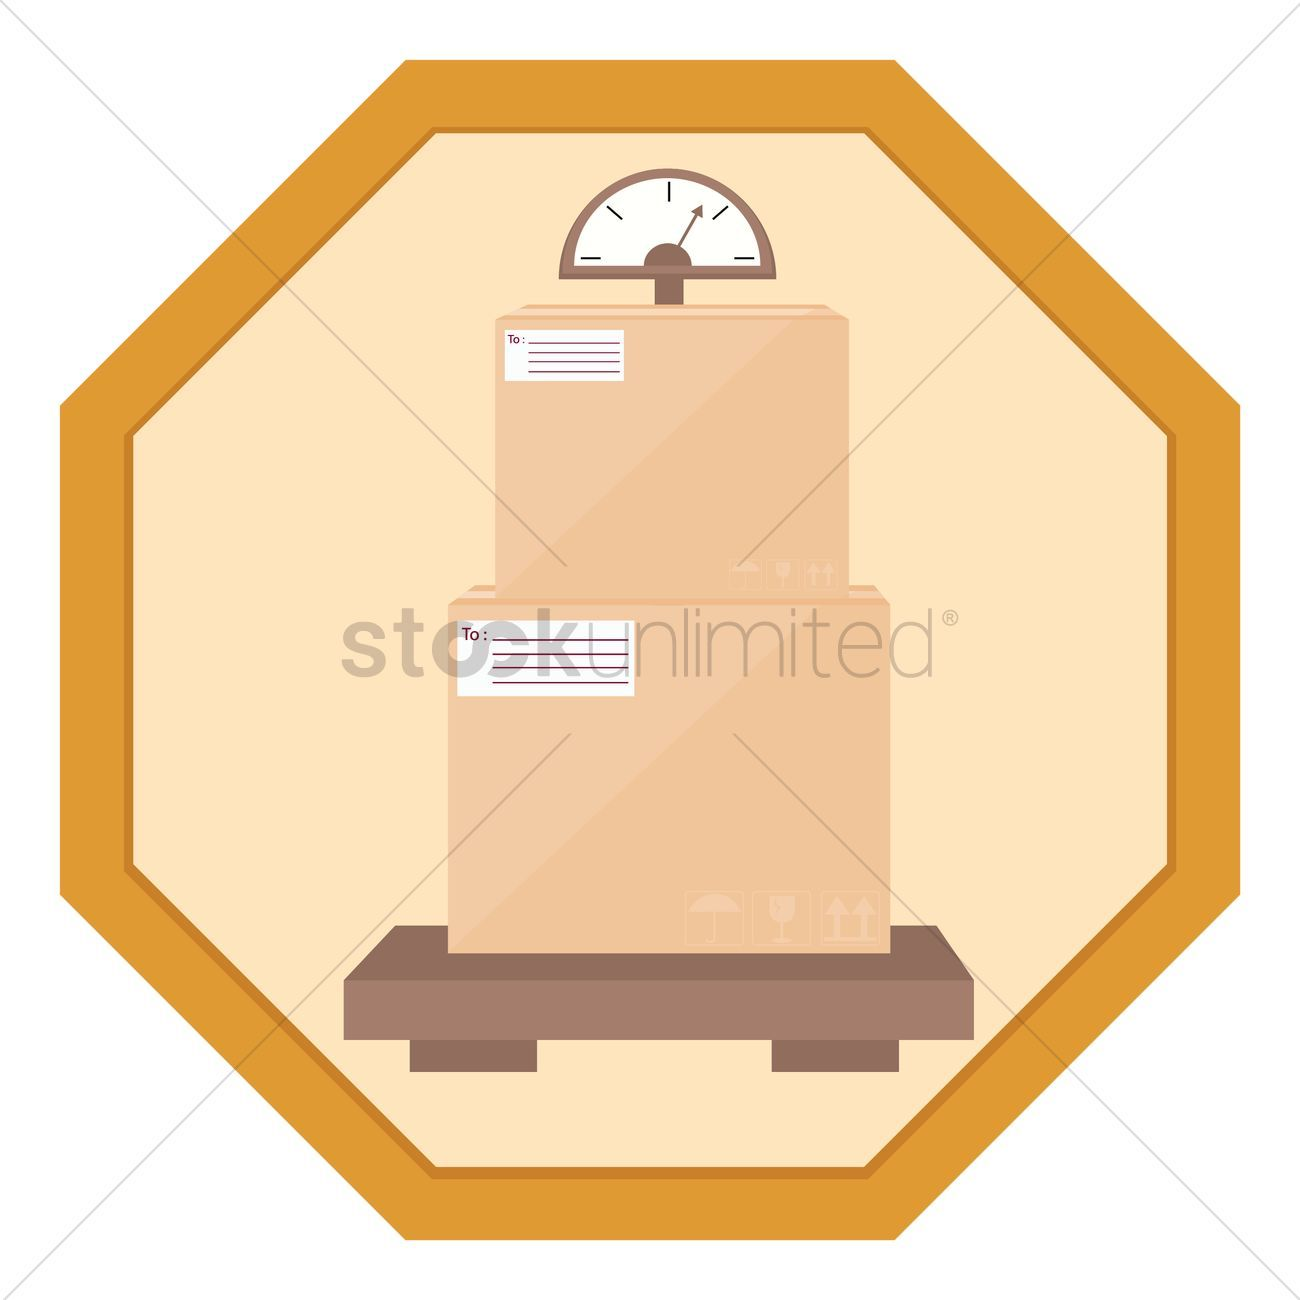 Box on weighing machine vectors stock clipart